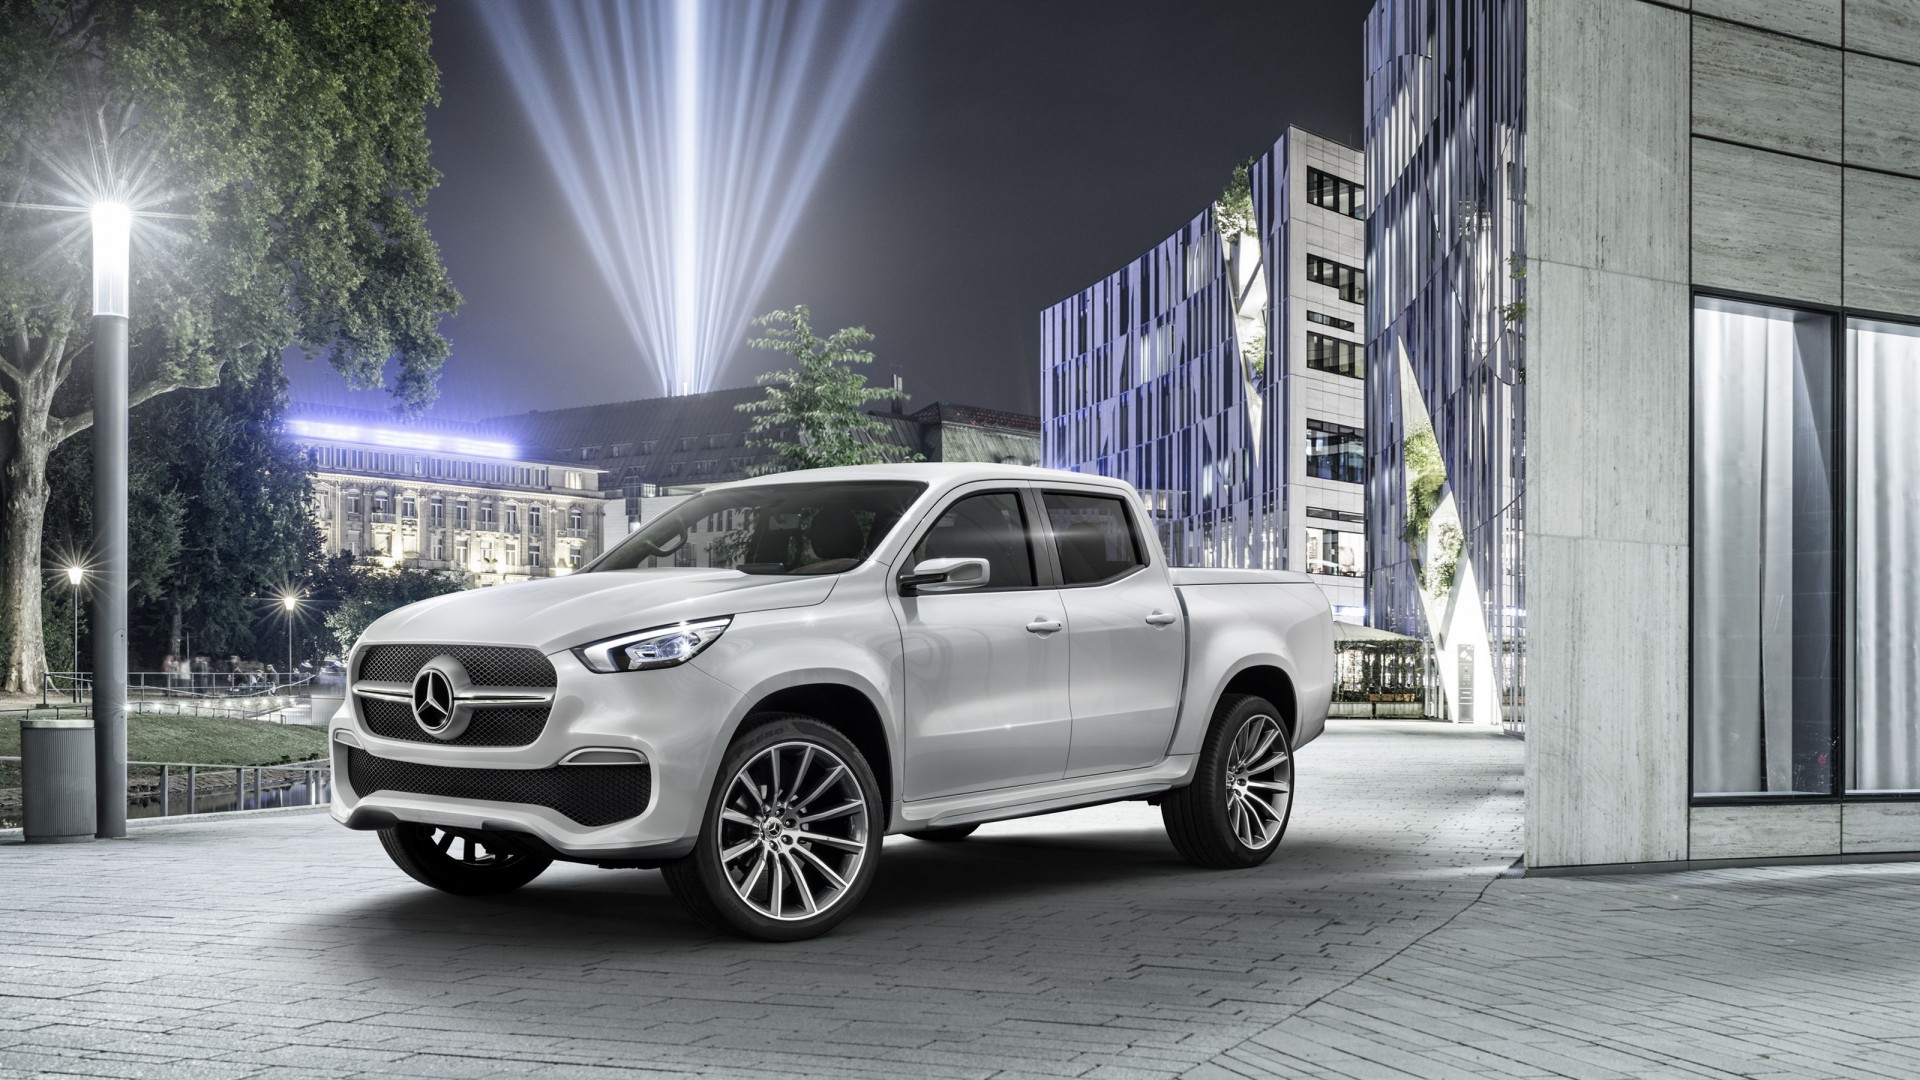 2017 Mercedes Benz X Class Pickup Truck Wallpaper | HD Car ...